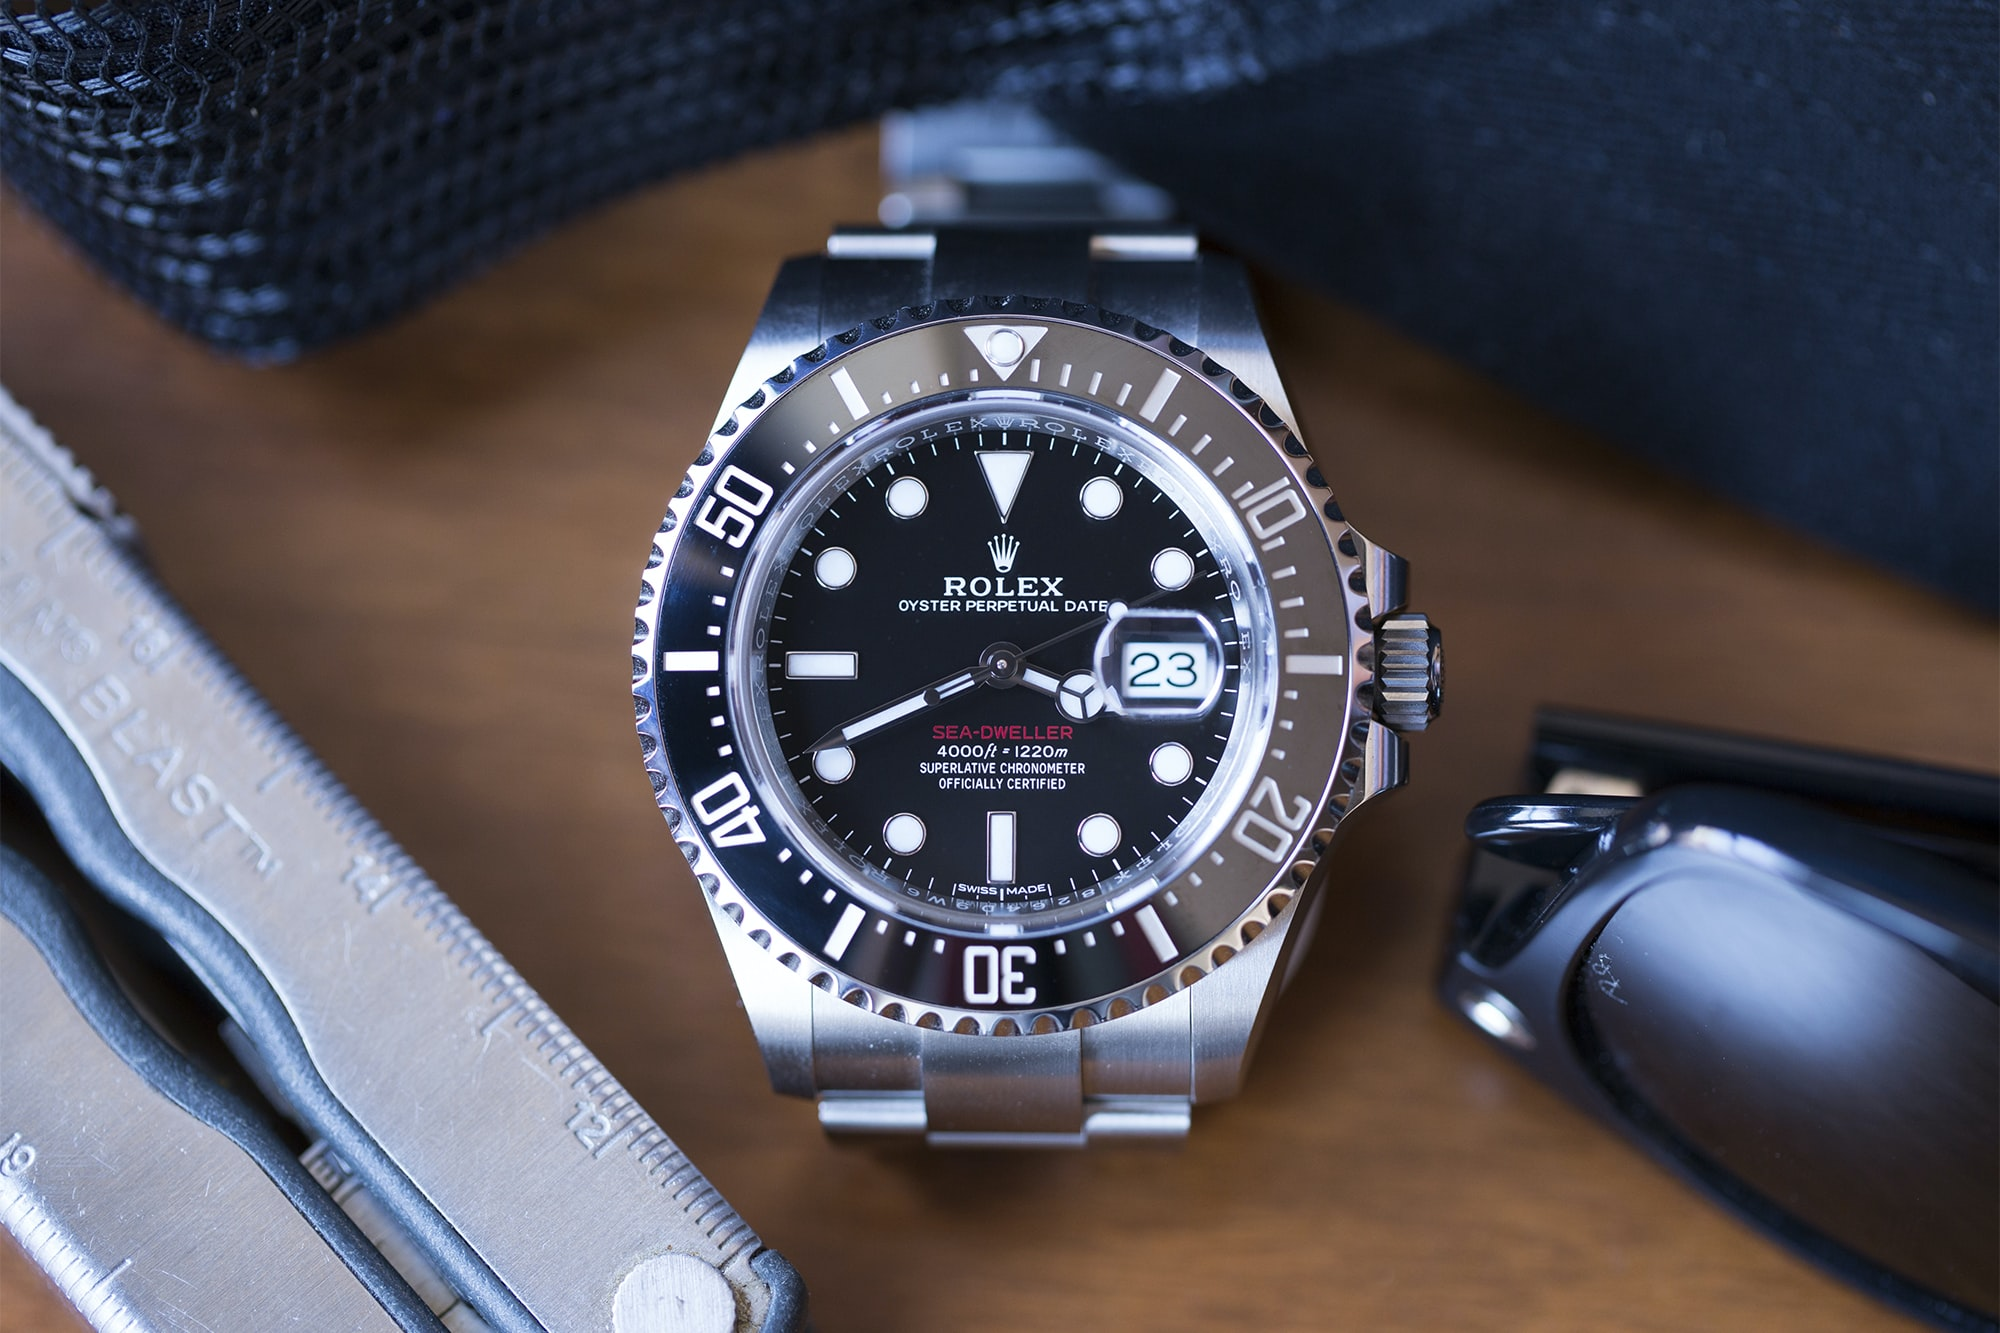 Rolex Sea-Dweller 126600 dial and accessories A Week On The Wrist: The Rolex Sea-Dweller Reference 126600 A Week On The Wrist: The Rolex Sea-Dweller Reference 126600  20011560 copy